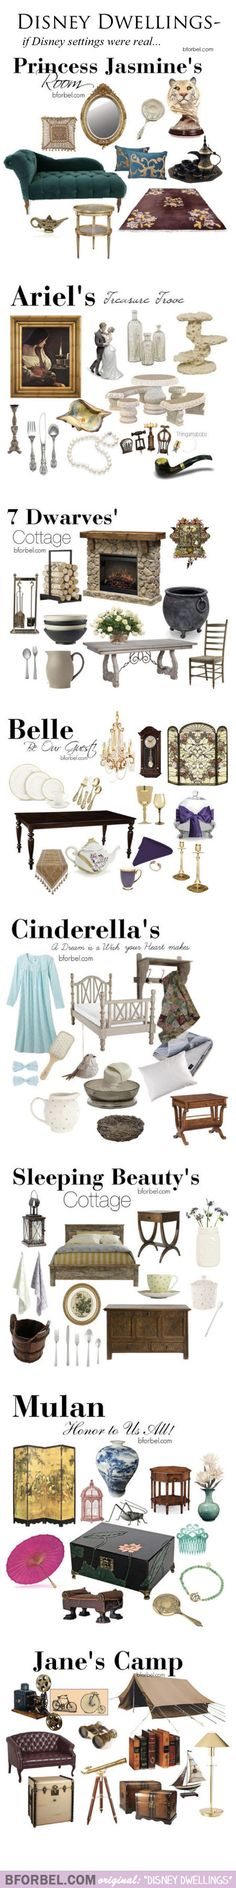 Disney Dwellings: decorating like Disney, by BforBel.com #RealityToDreams #Disney